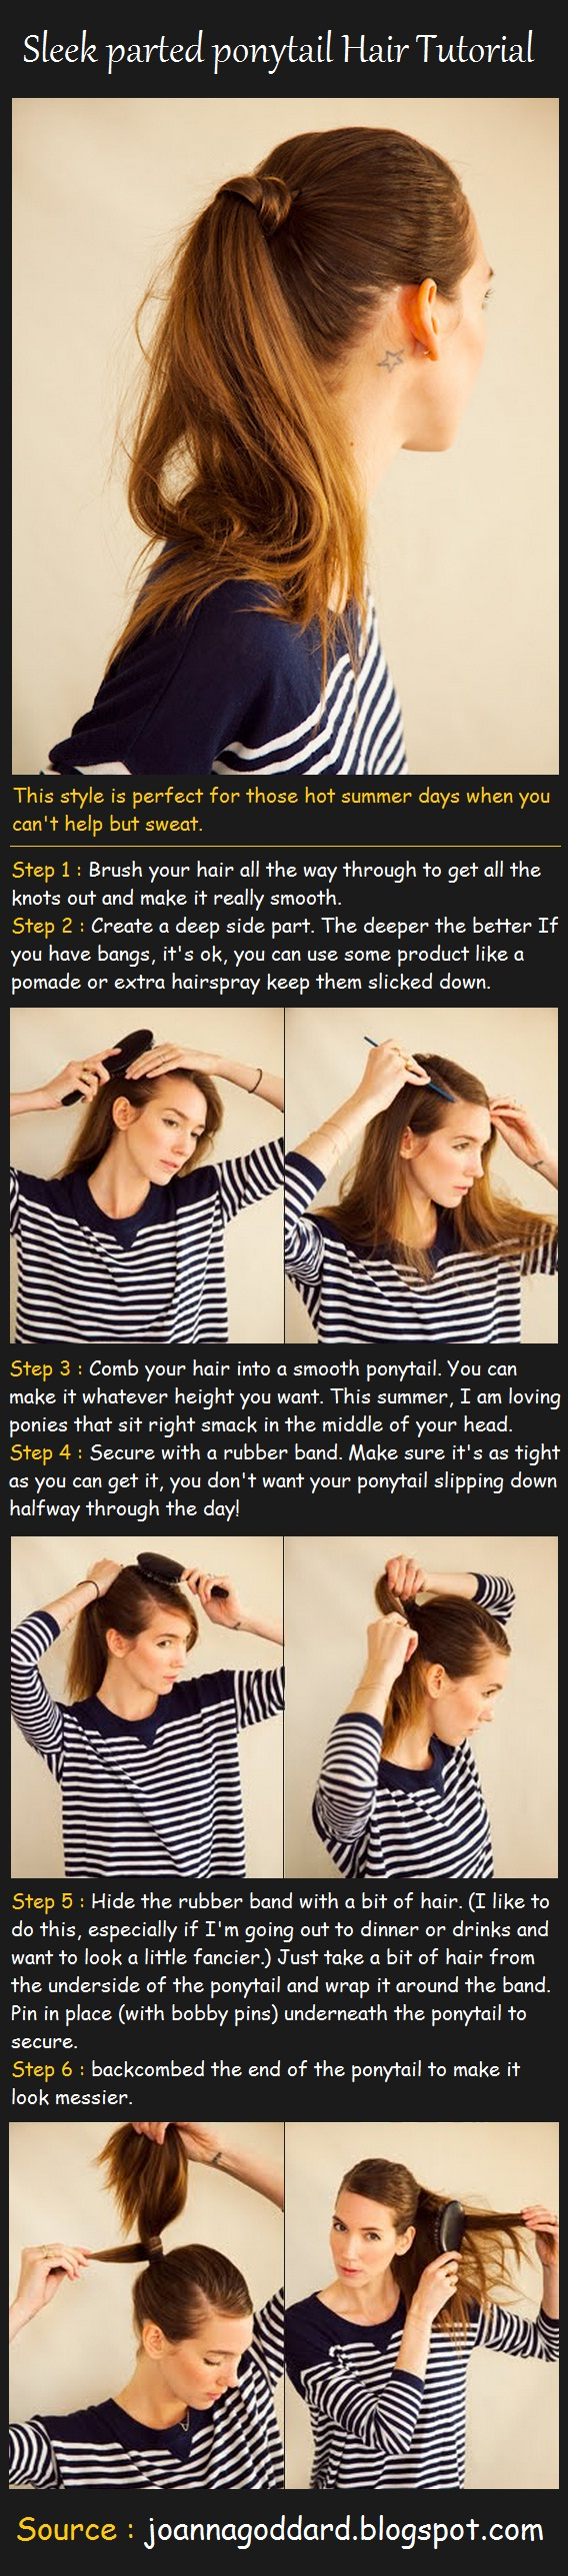 sleek-parted-ponytail-hair-tutorial